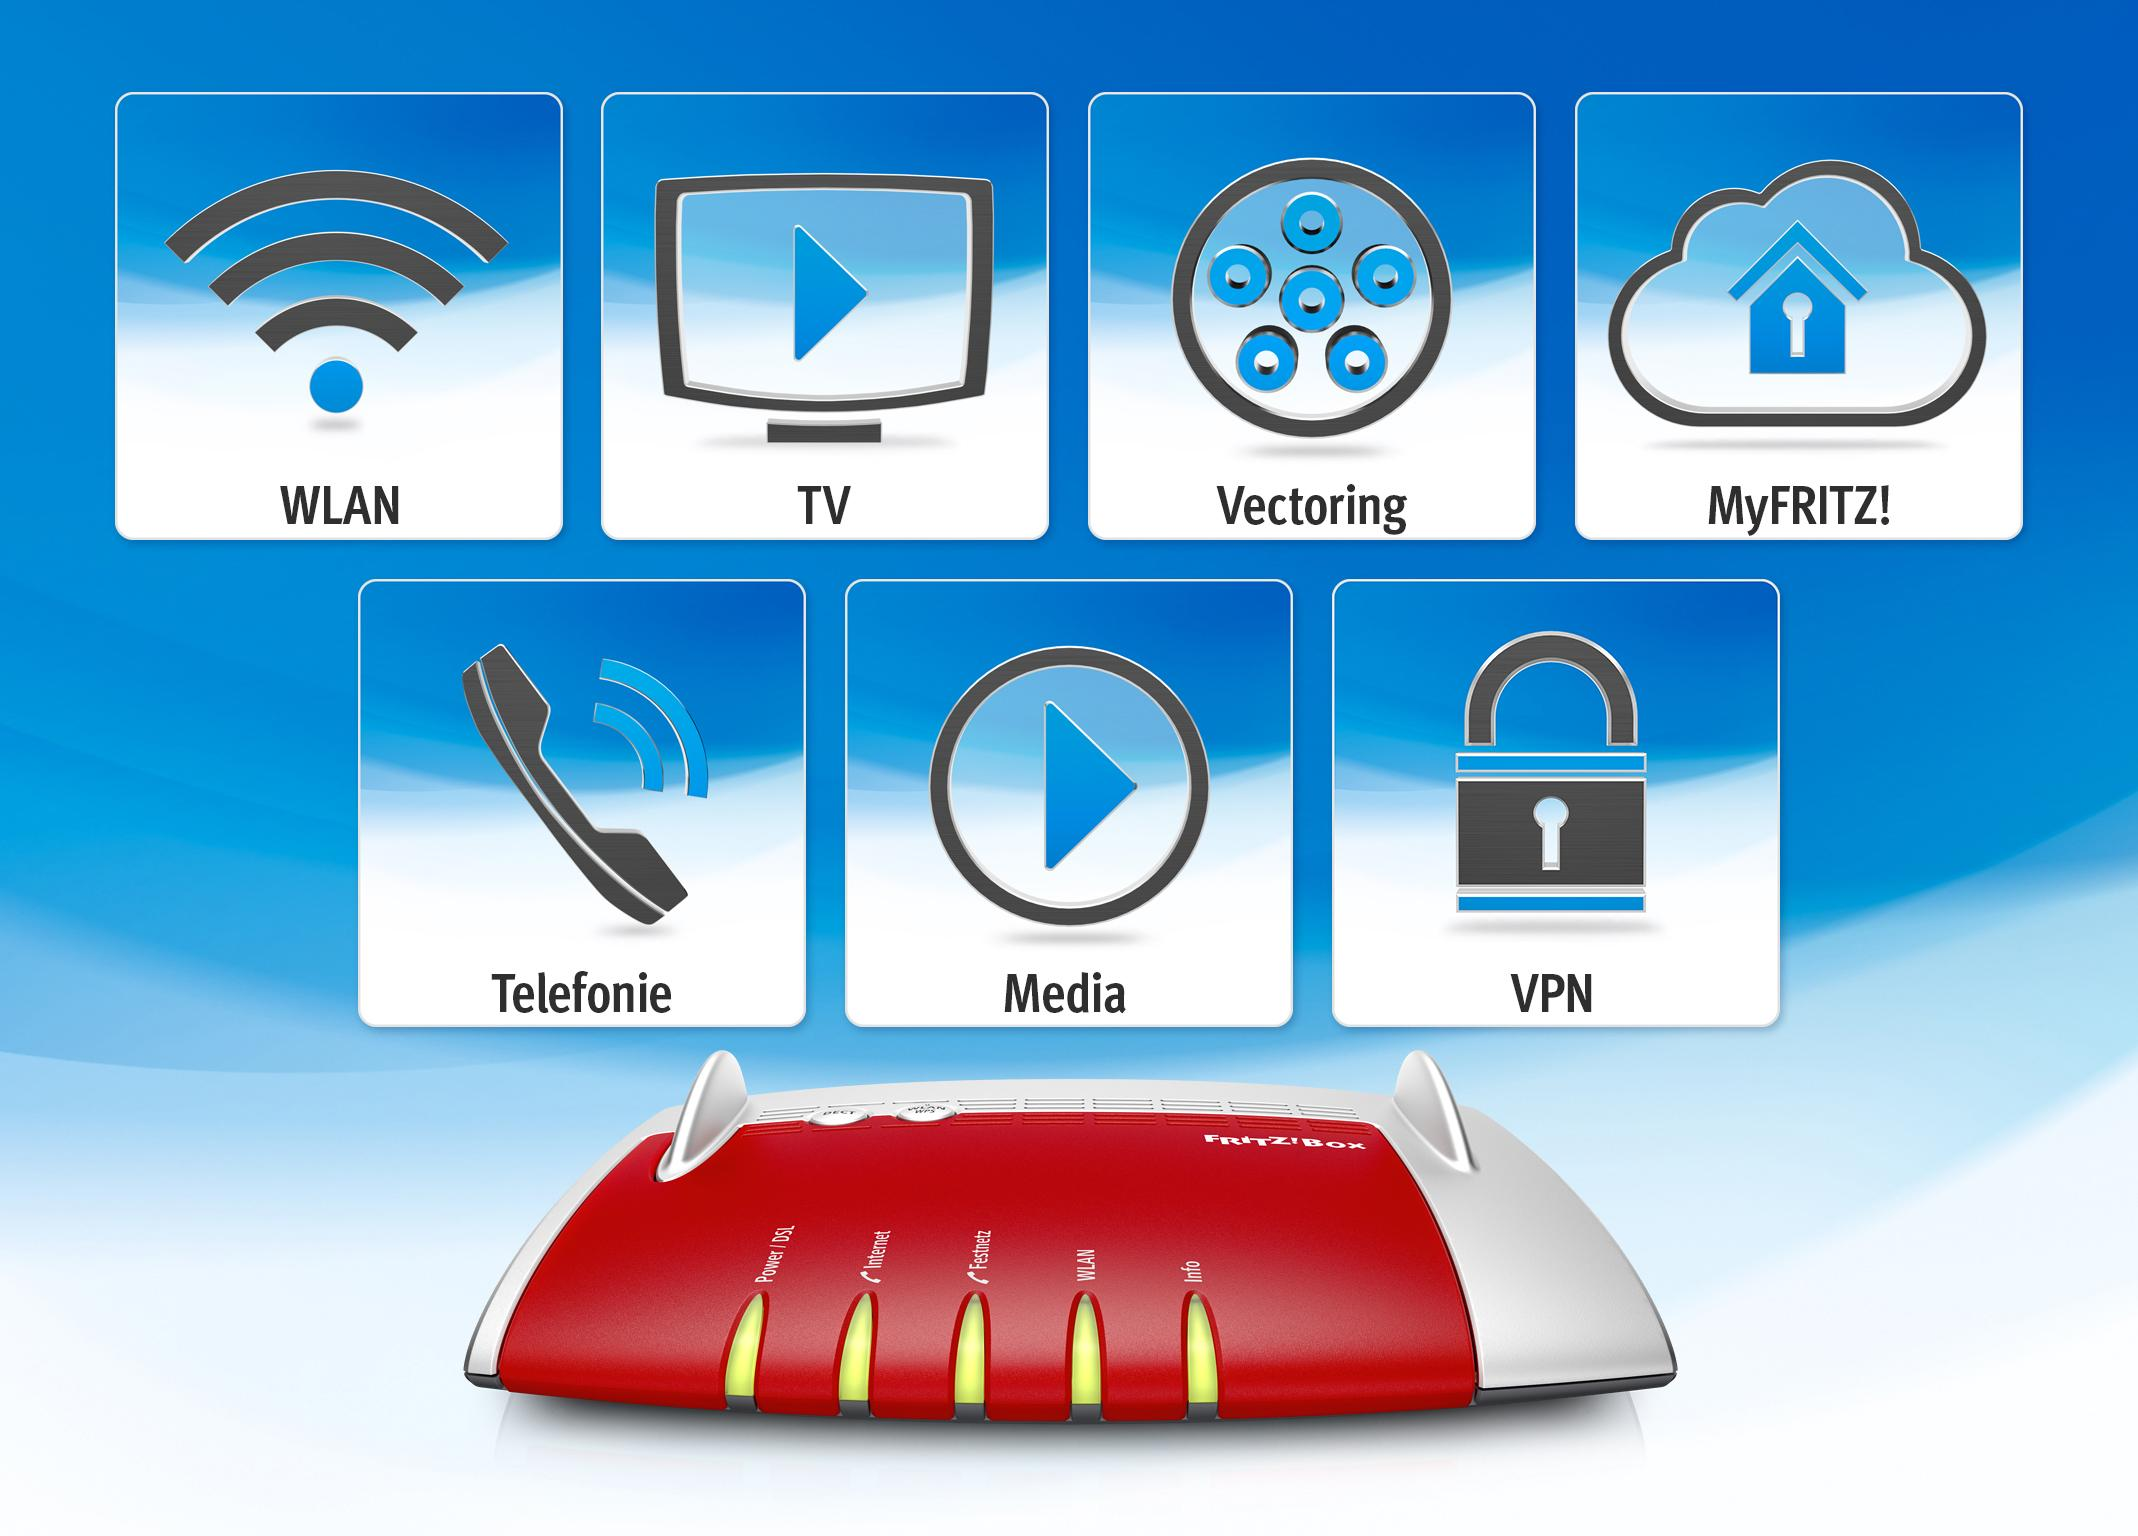 avm fritz box 7490 wlan ac n router 5 ghz2 4 ghz computer zubeh r. Black Bedroom Furniture Sets. Home Design Ideas